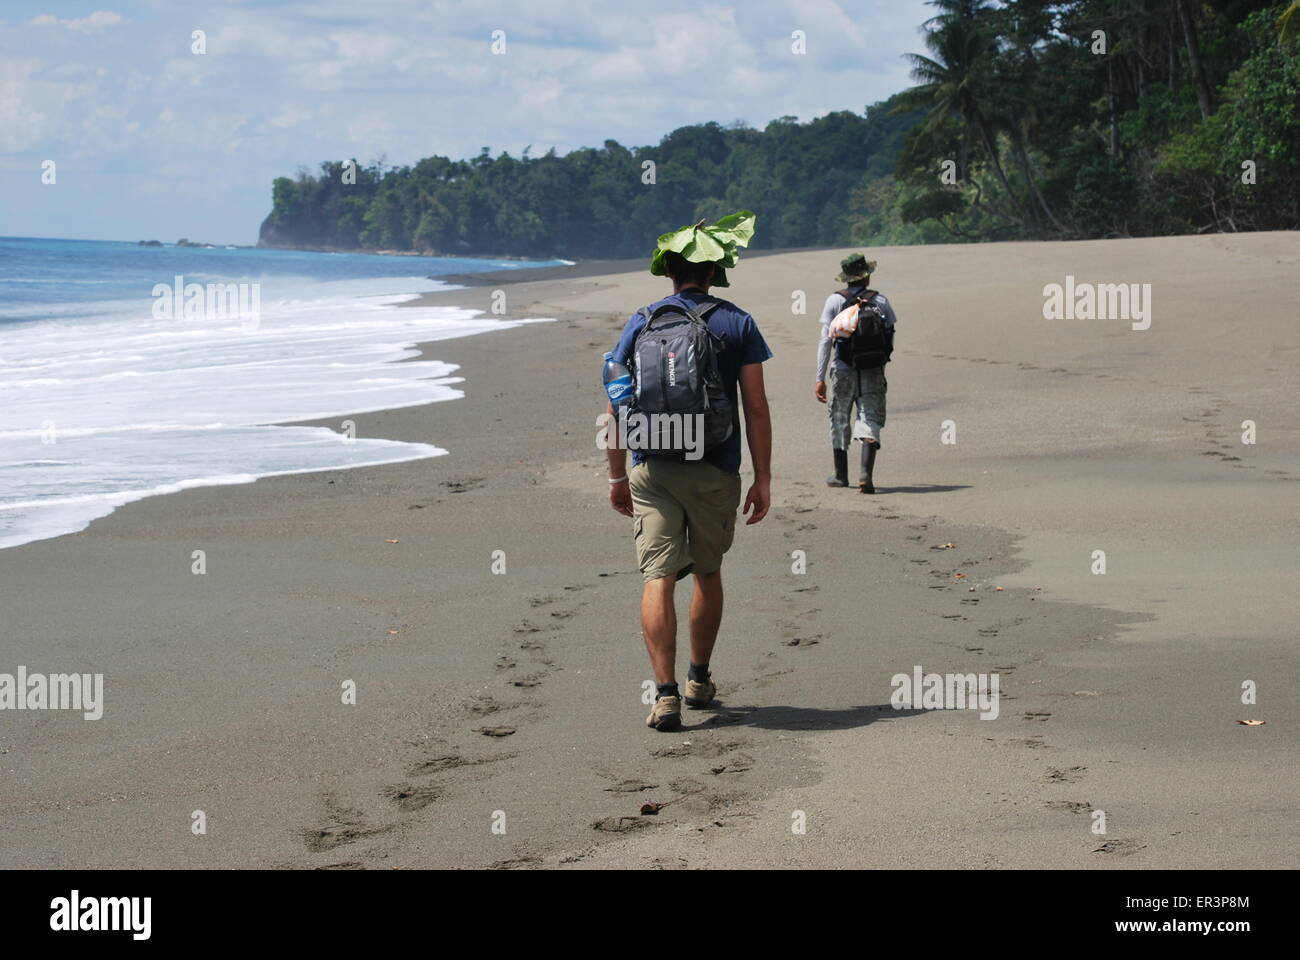 Trekking le long de la plage, dans le parc national de Corcovado, Costa Rica Photo Stock